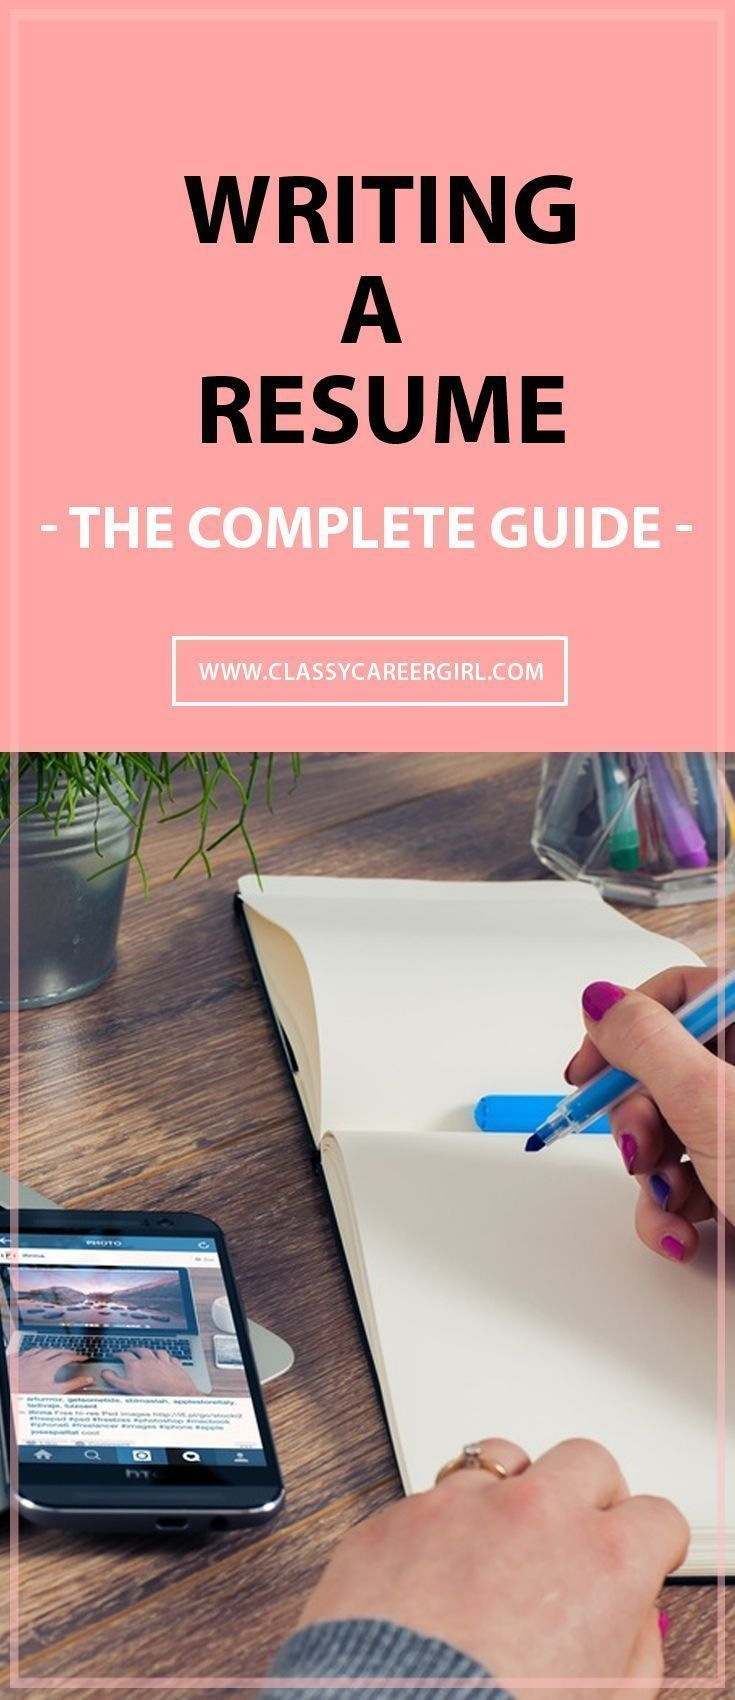 Writing a Resume The Complete Guide